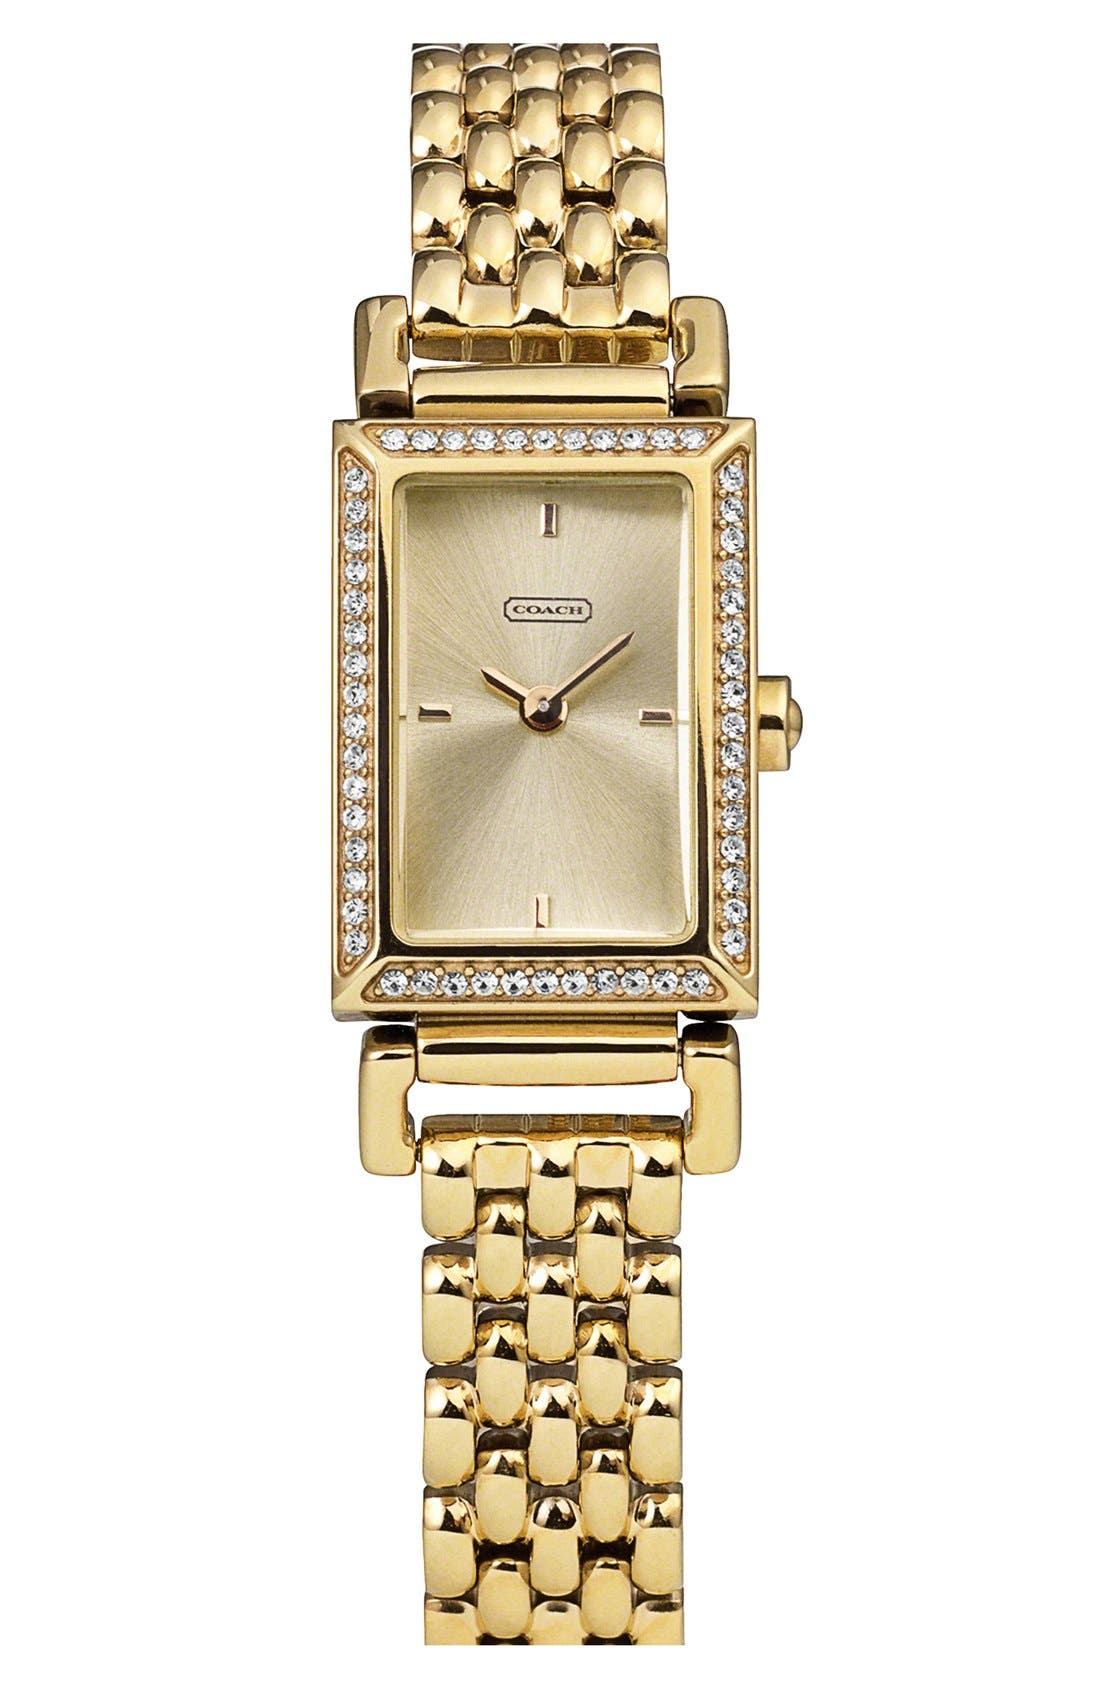 Alternate Image 1 Selected - COACH 'Madison' Crystal Bezel Bracelet Watch, 17mm x 30mm